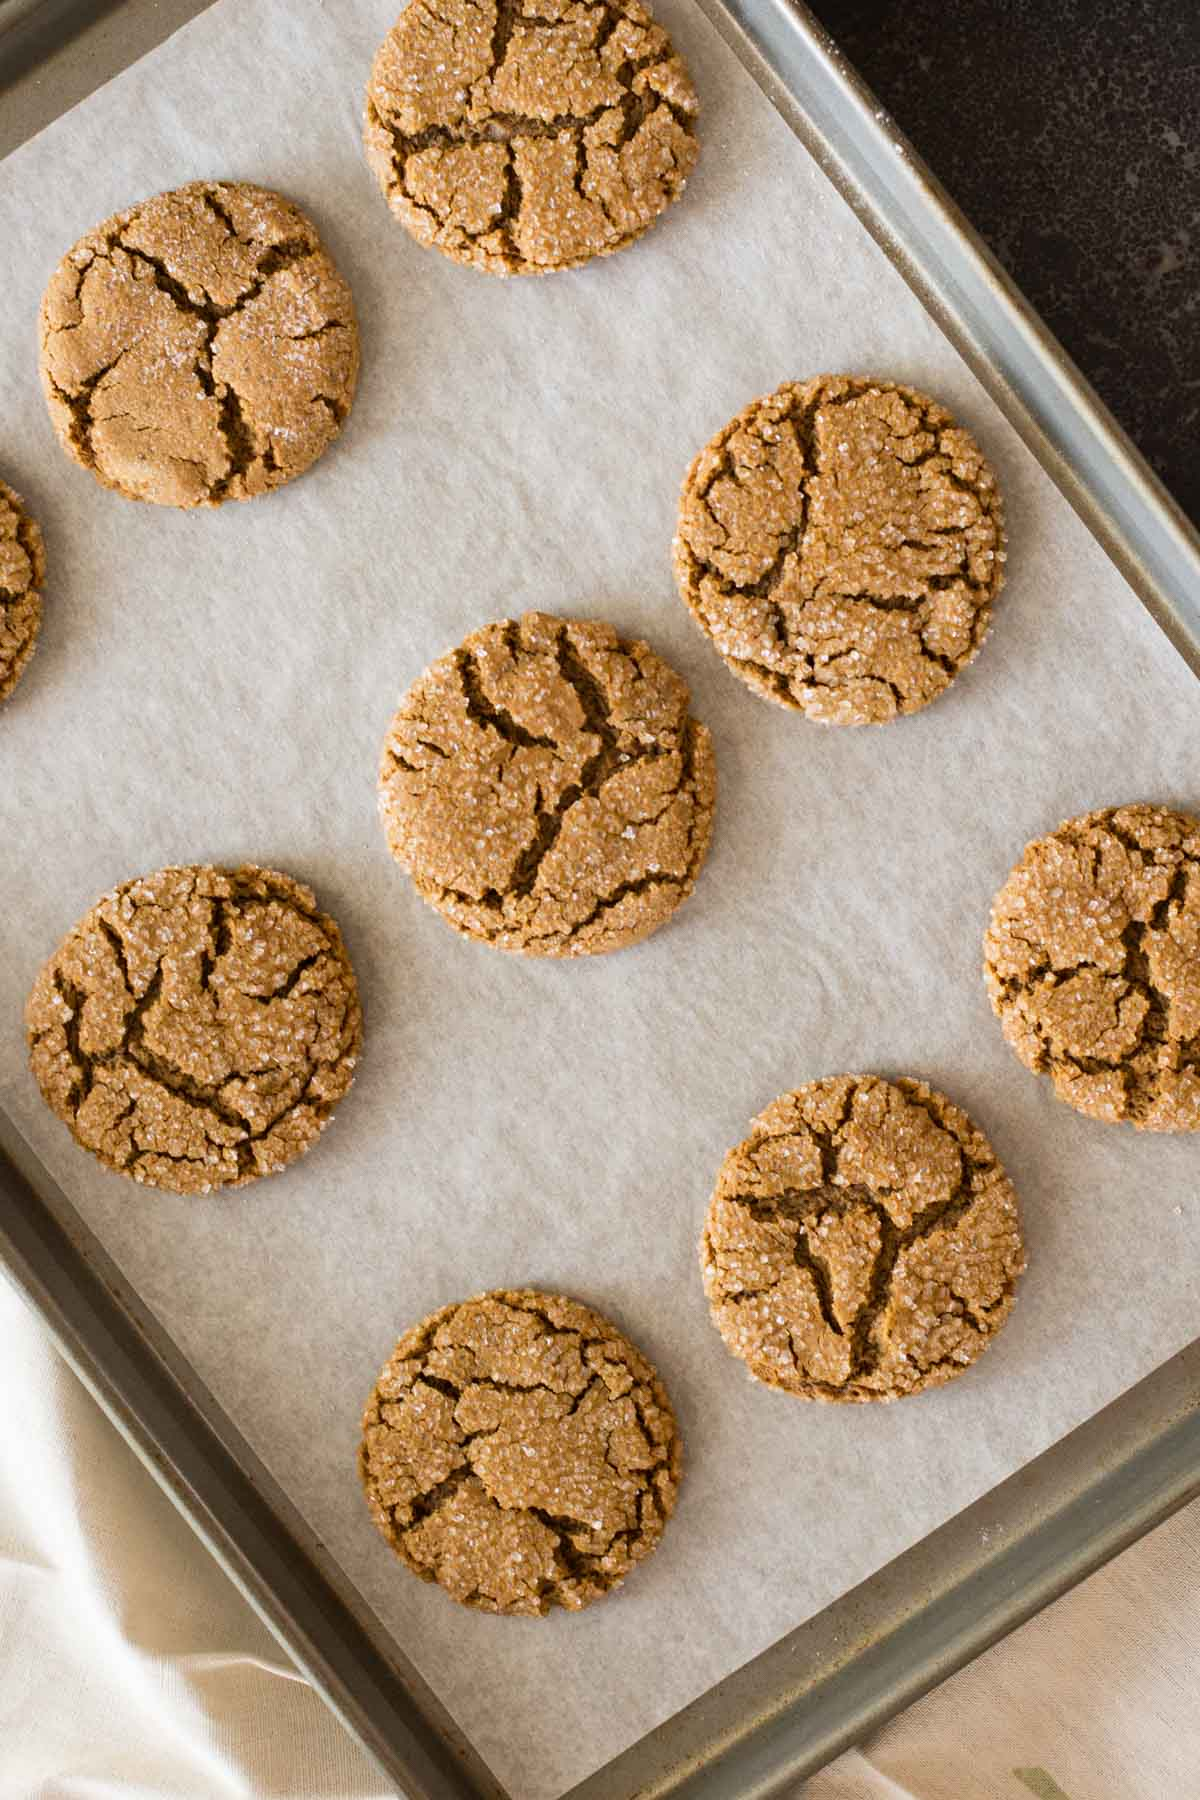 Peanut Butter Molasses Cookies on a parchment paper lined baking sheet.